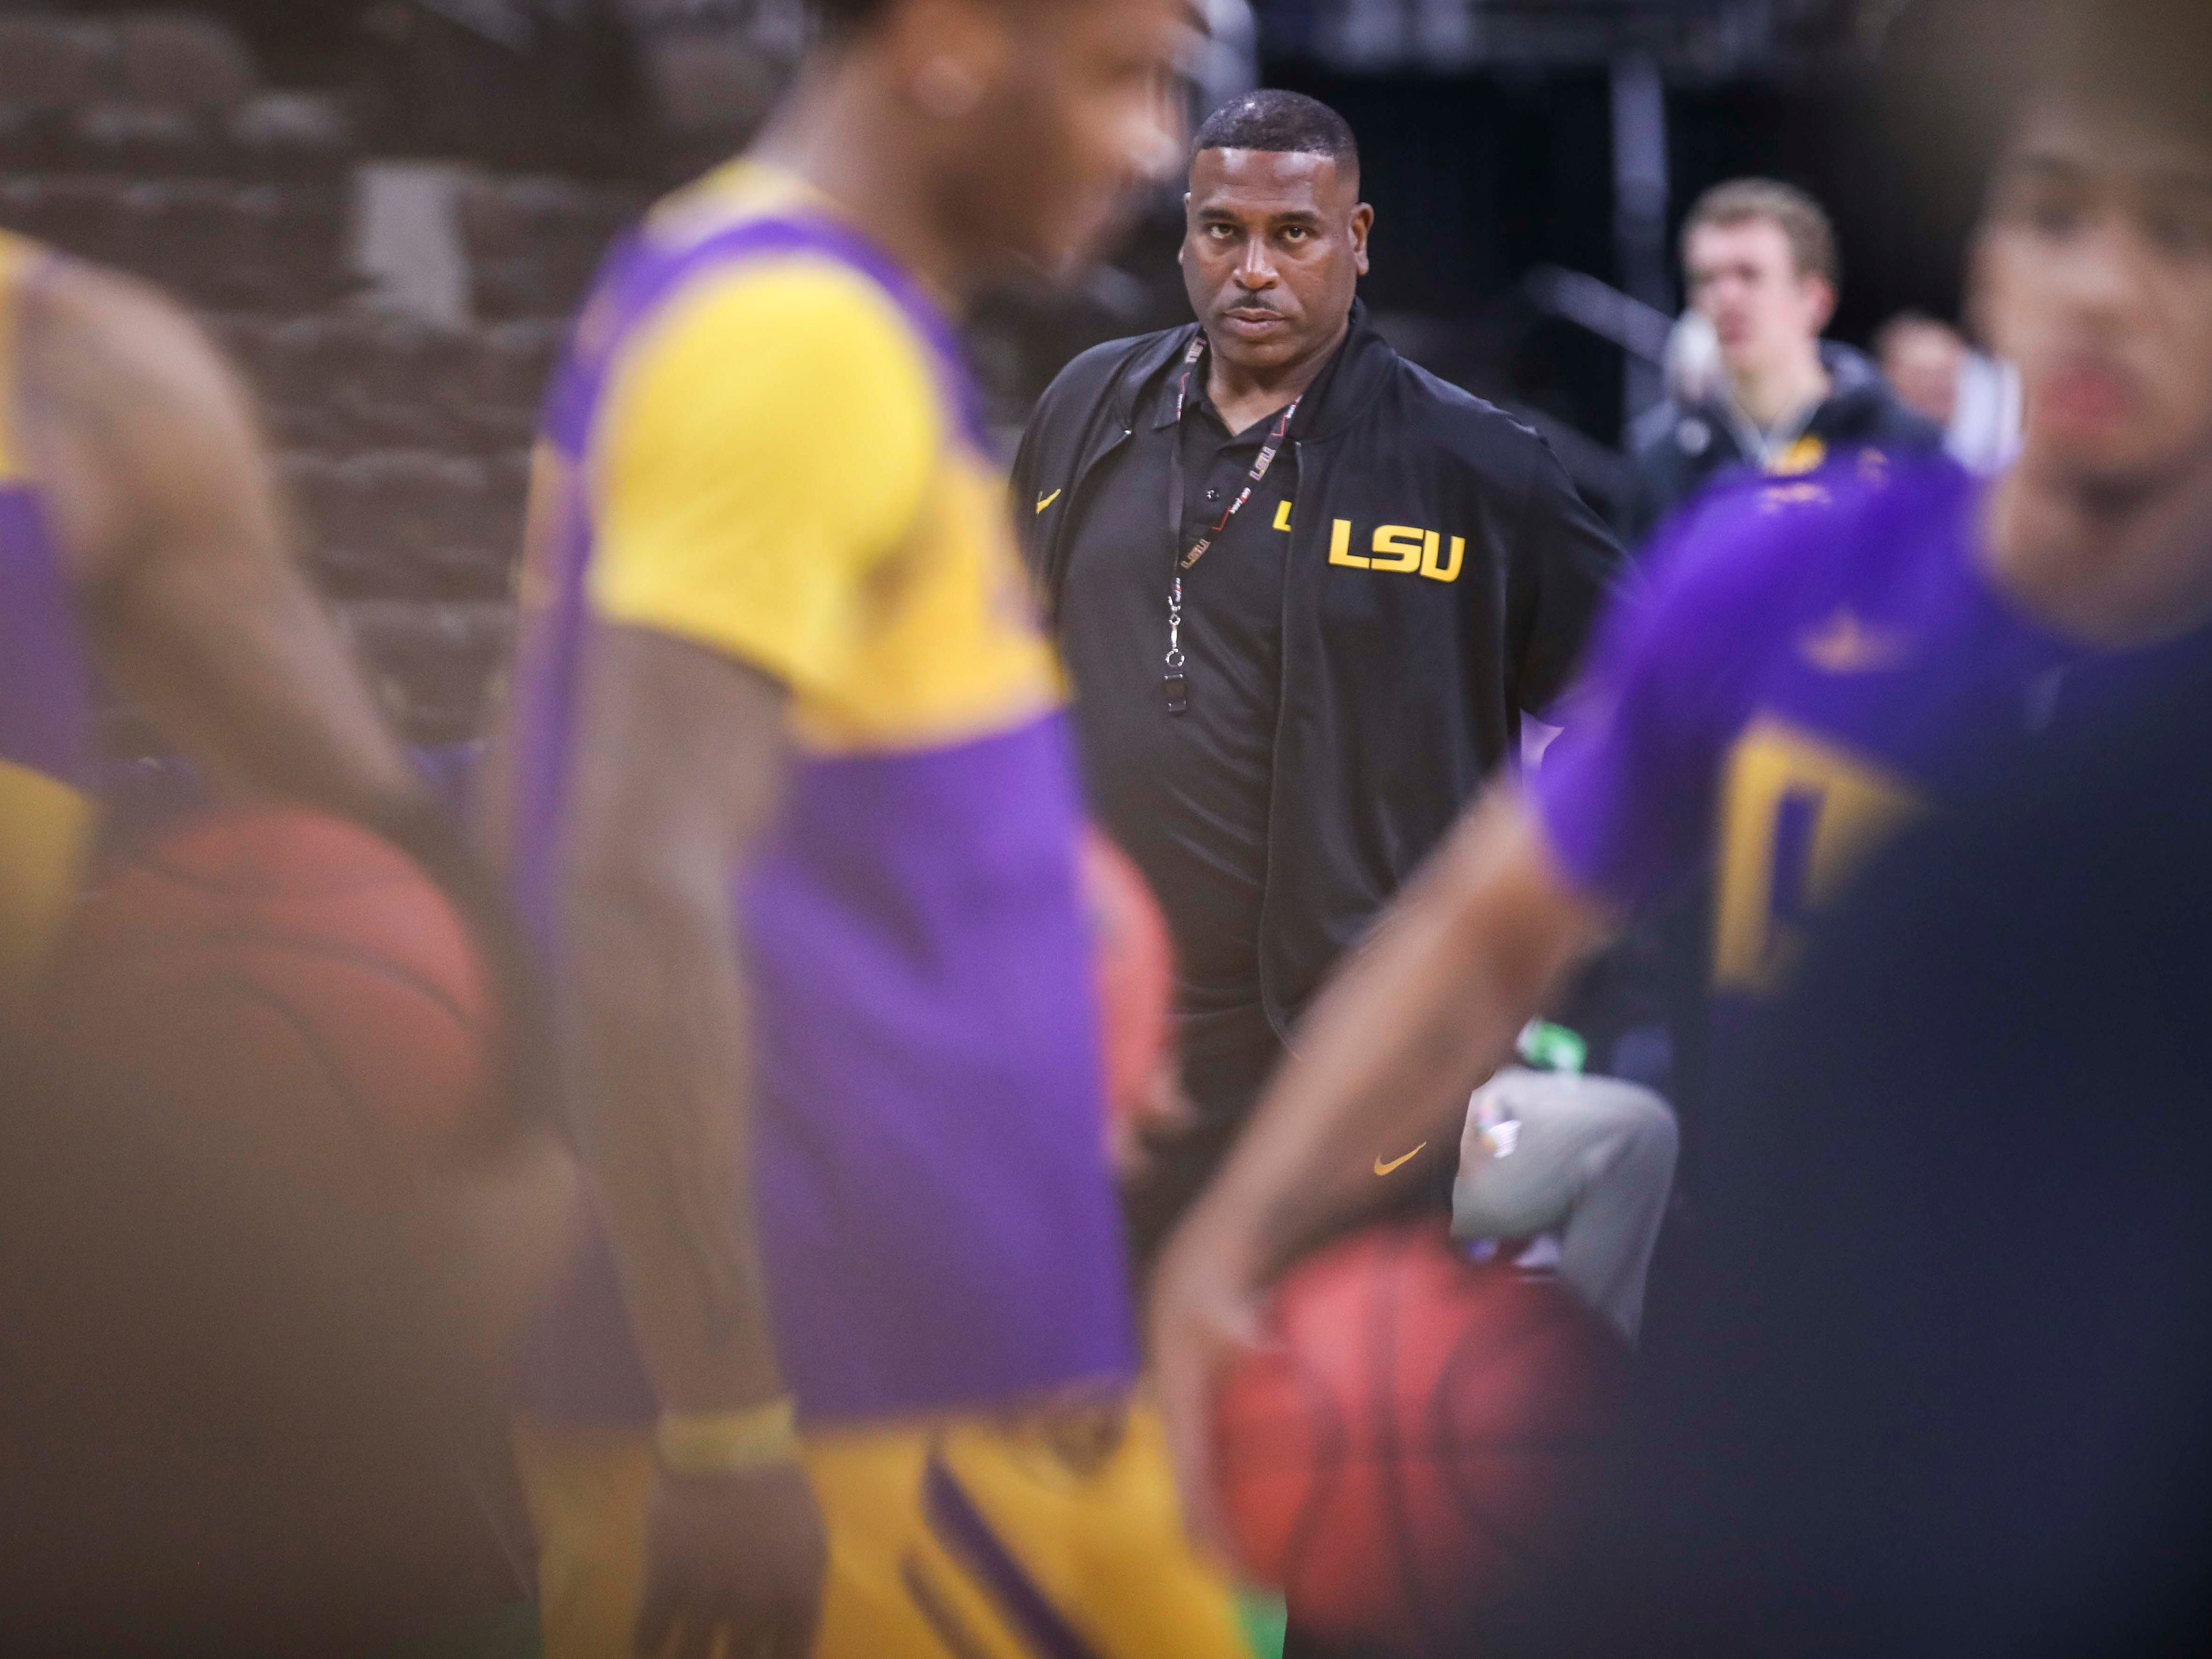 Tony Benford watches practice in Jacksonville at the Midwest Region Wednesday afternoon. Benford took over as interim head coach of LSU after Will Wade was indefinitely suspended. March 20, 2019